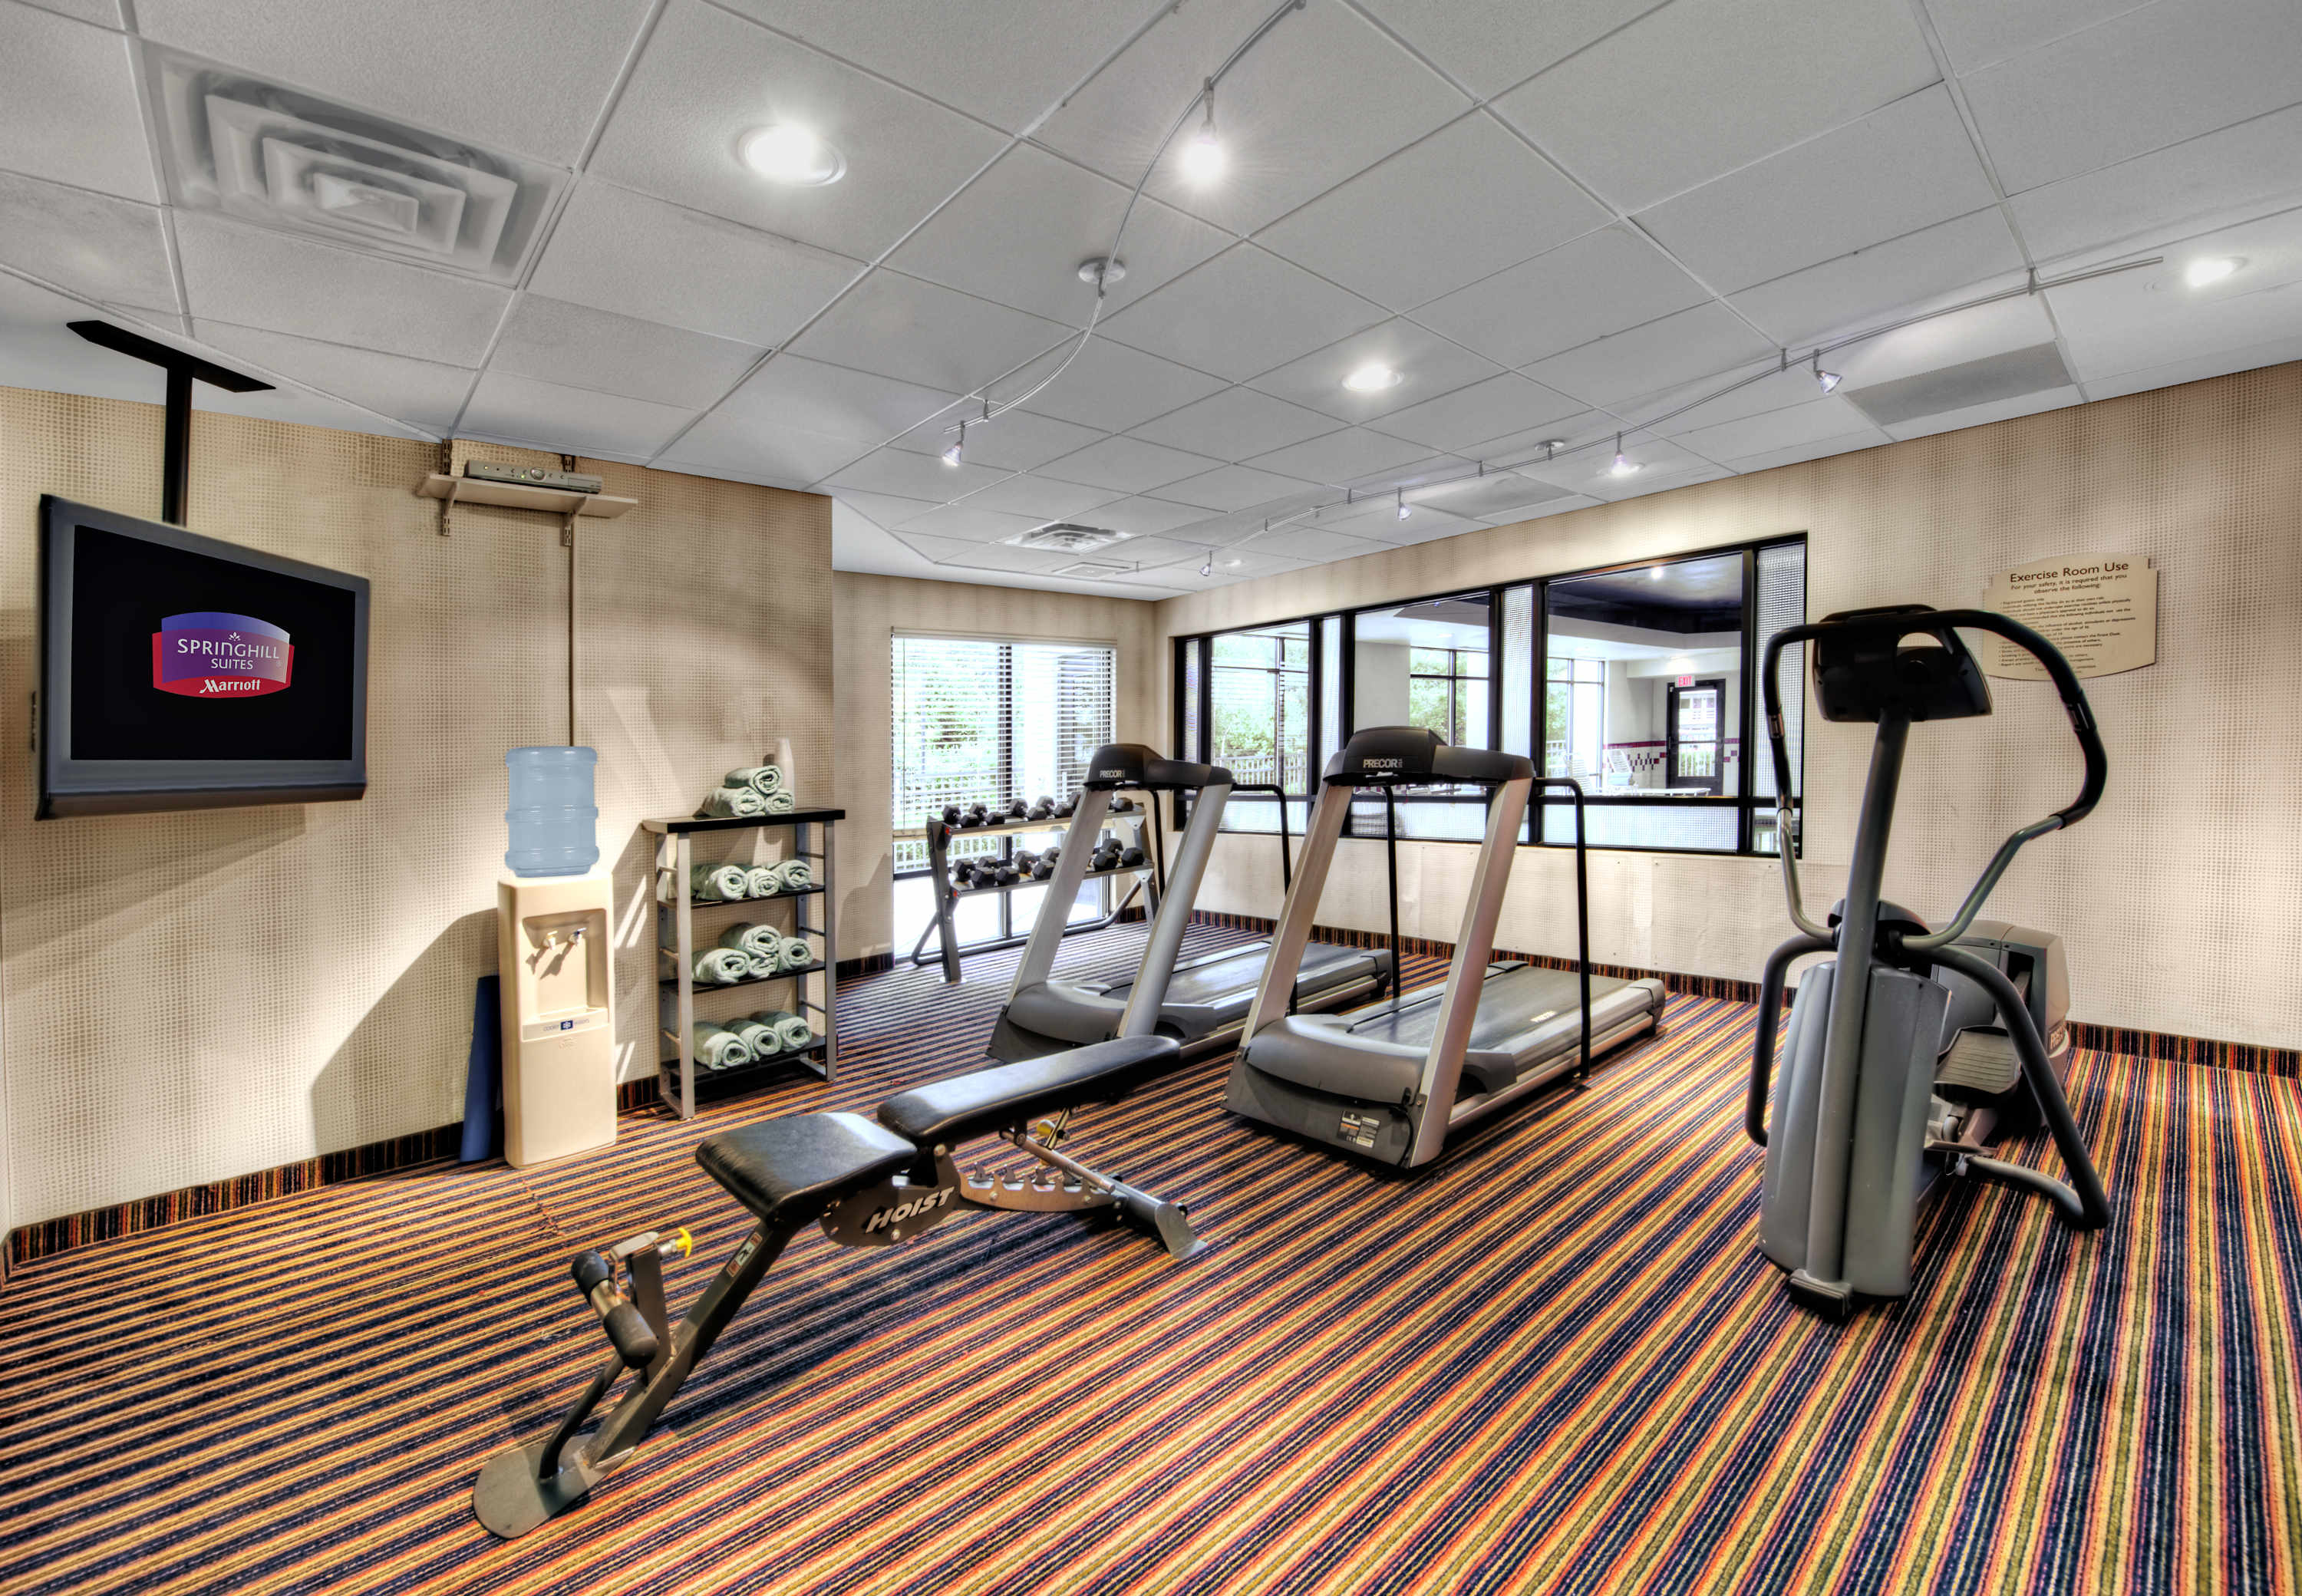 SpringHill Suites by Marriott Milford image 3